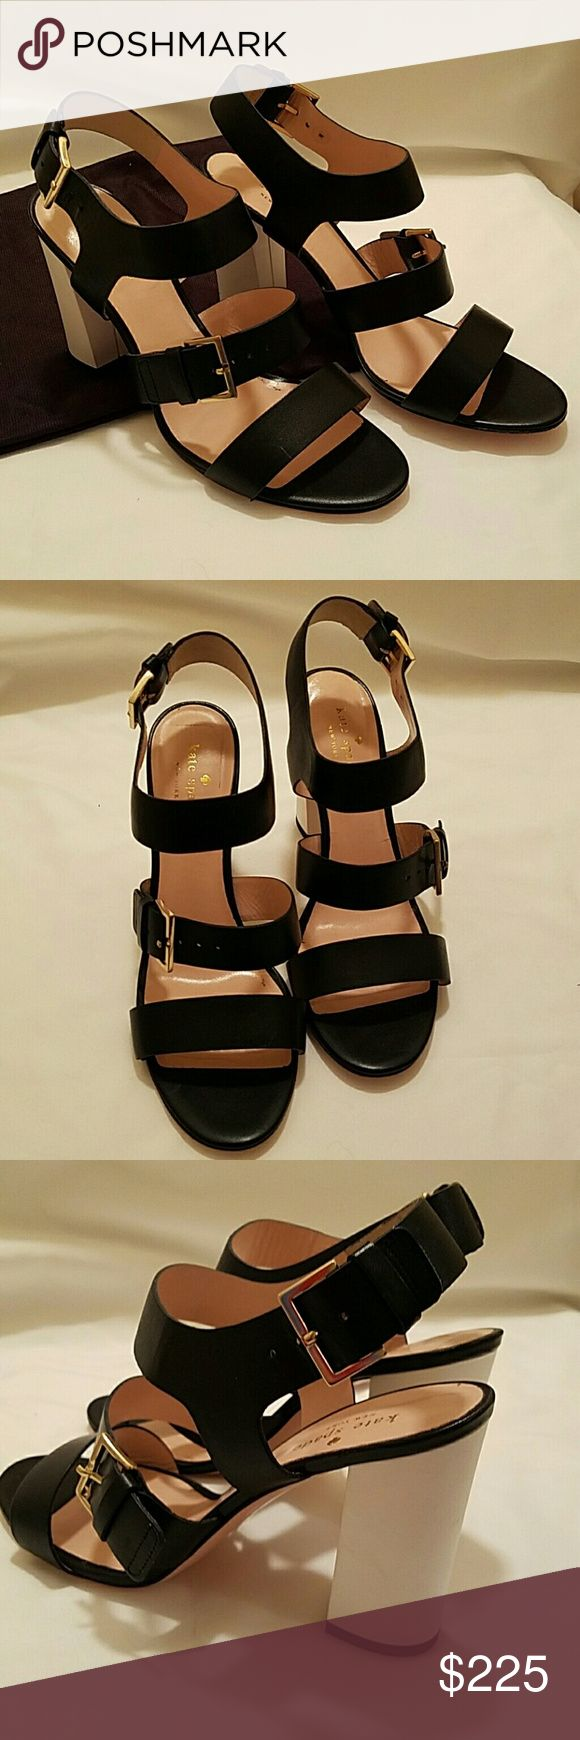 💋Sunday Shoe Sale🎁NIB Kate Spade leather sandals Sexy, black and white, Kate Spade leather heels with gold adjustable buckles. Original cloth bag included. Never worn.  Sorry, but I can't find the lid to the box! kate spade Shoes Heels